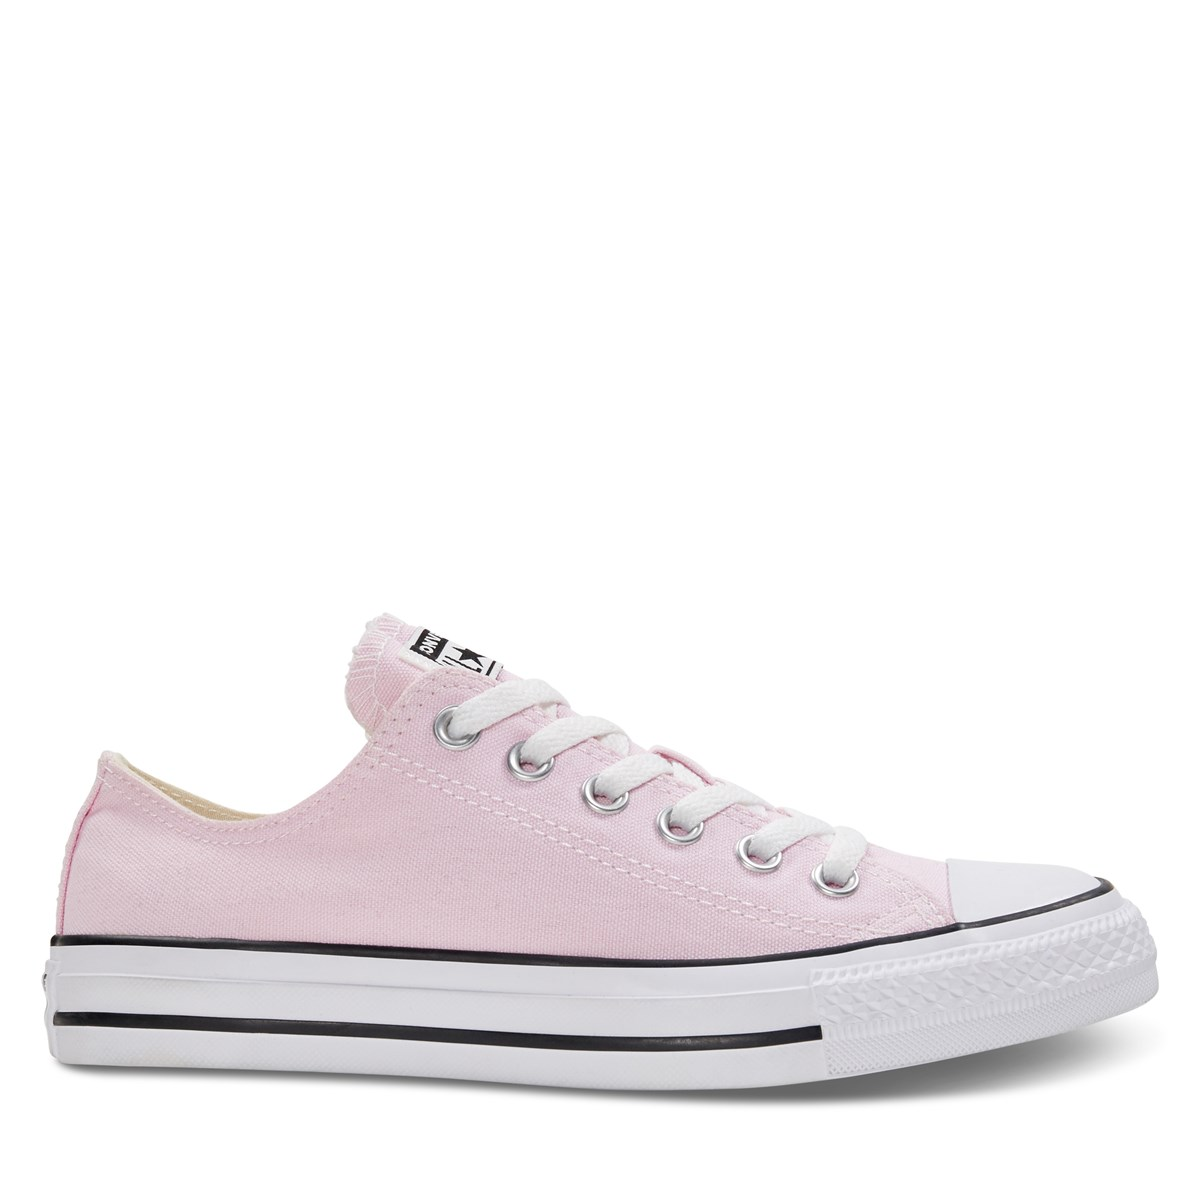 Women's Chuck Taylor All Star in Pink